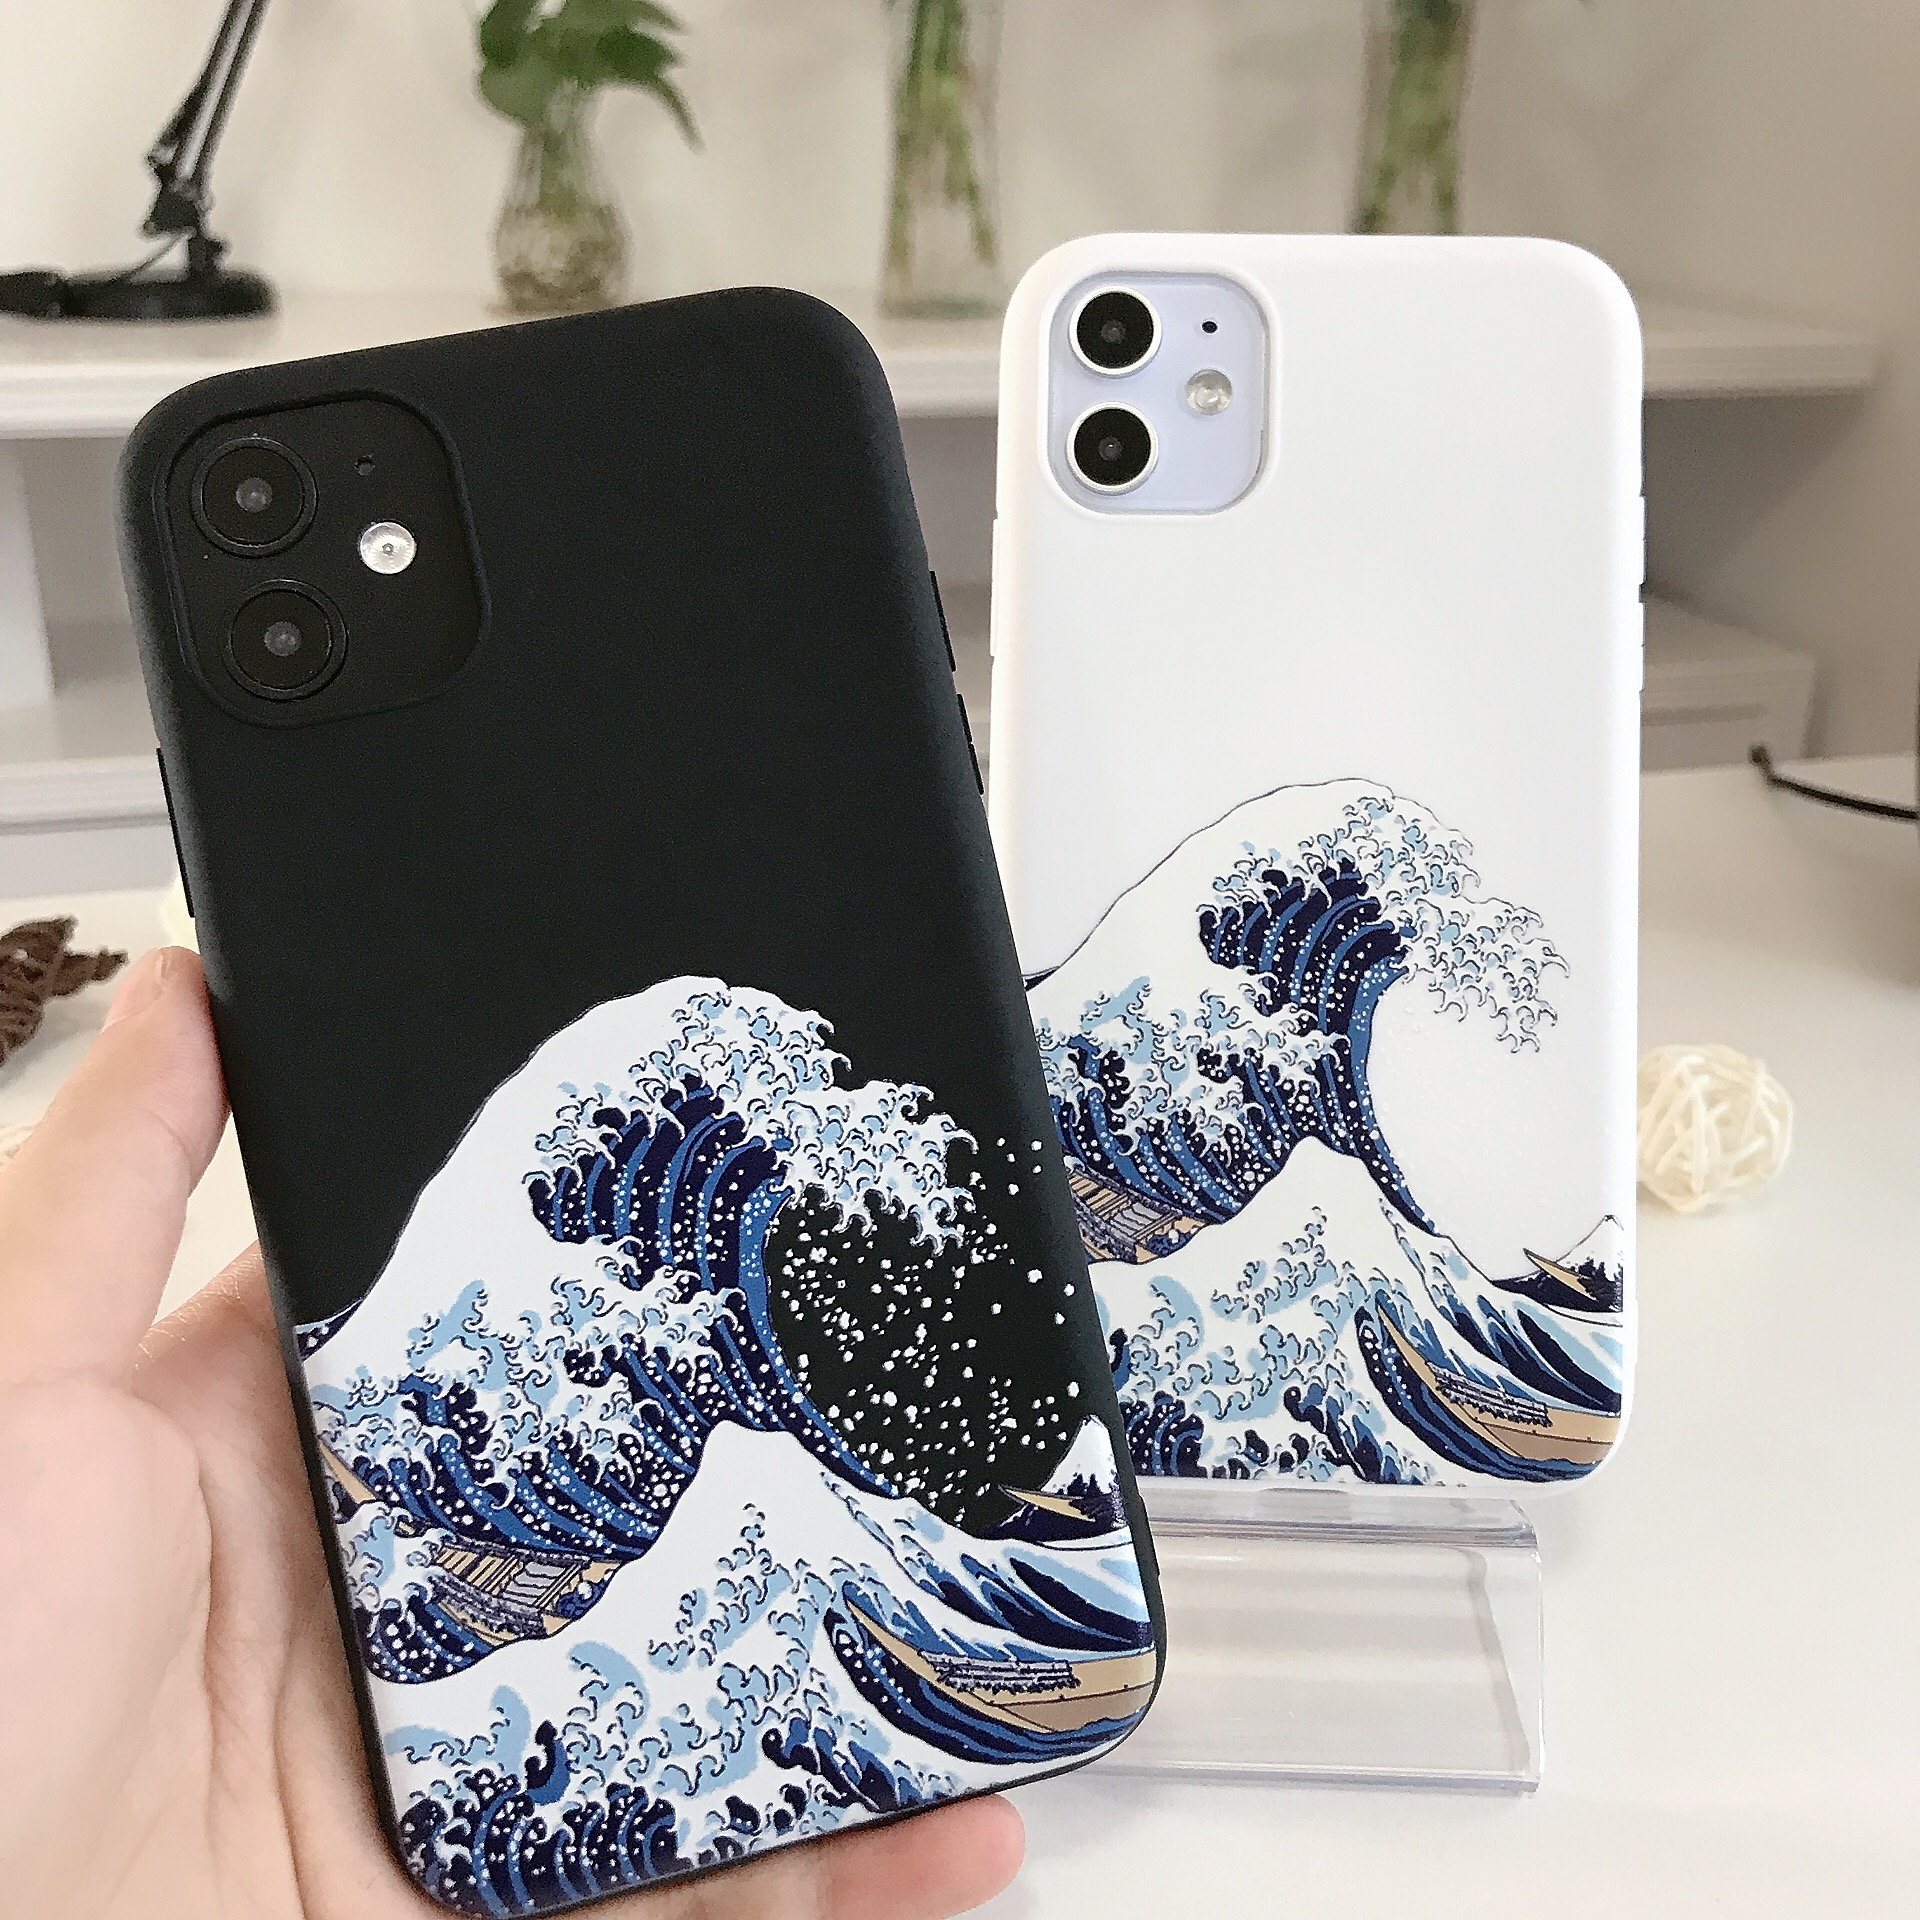 The Big Wave of kanagawa Phone Cover for iphone X XS MAX XR Soft Fundas Case For iPhone 11 pro MAX 6 7 8 Plus SE 2020 Magic Surf